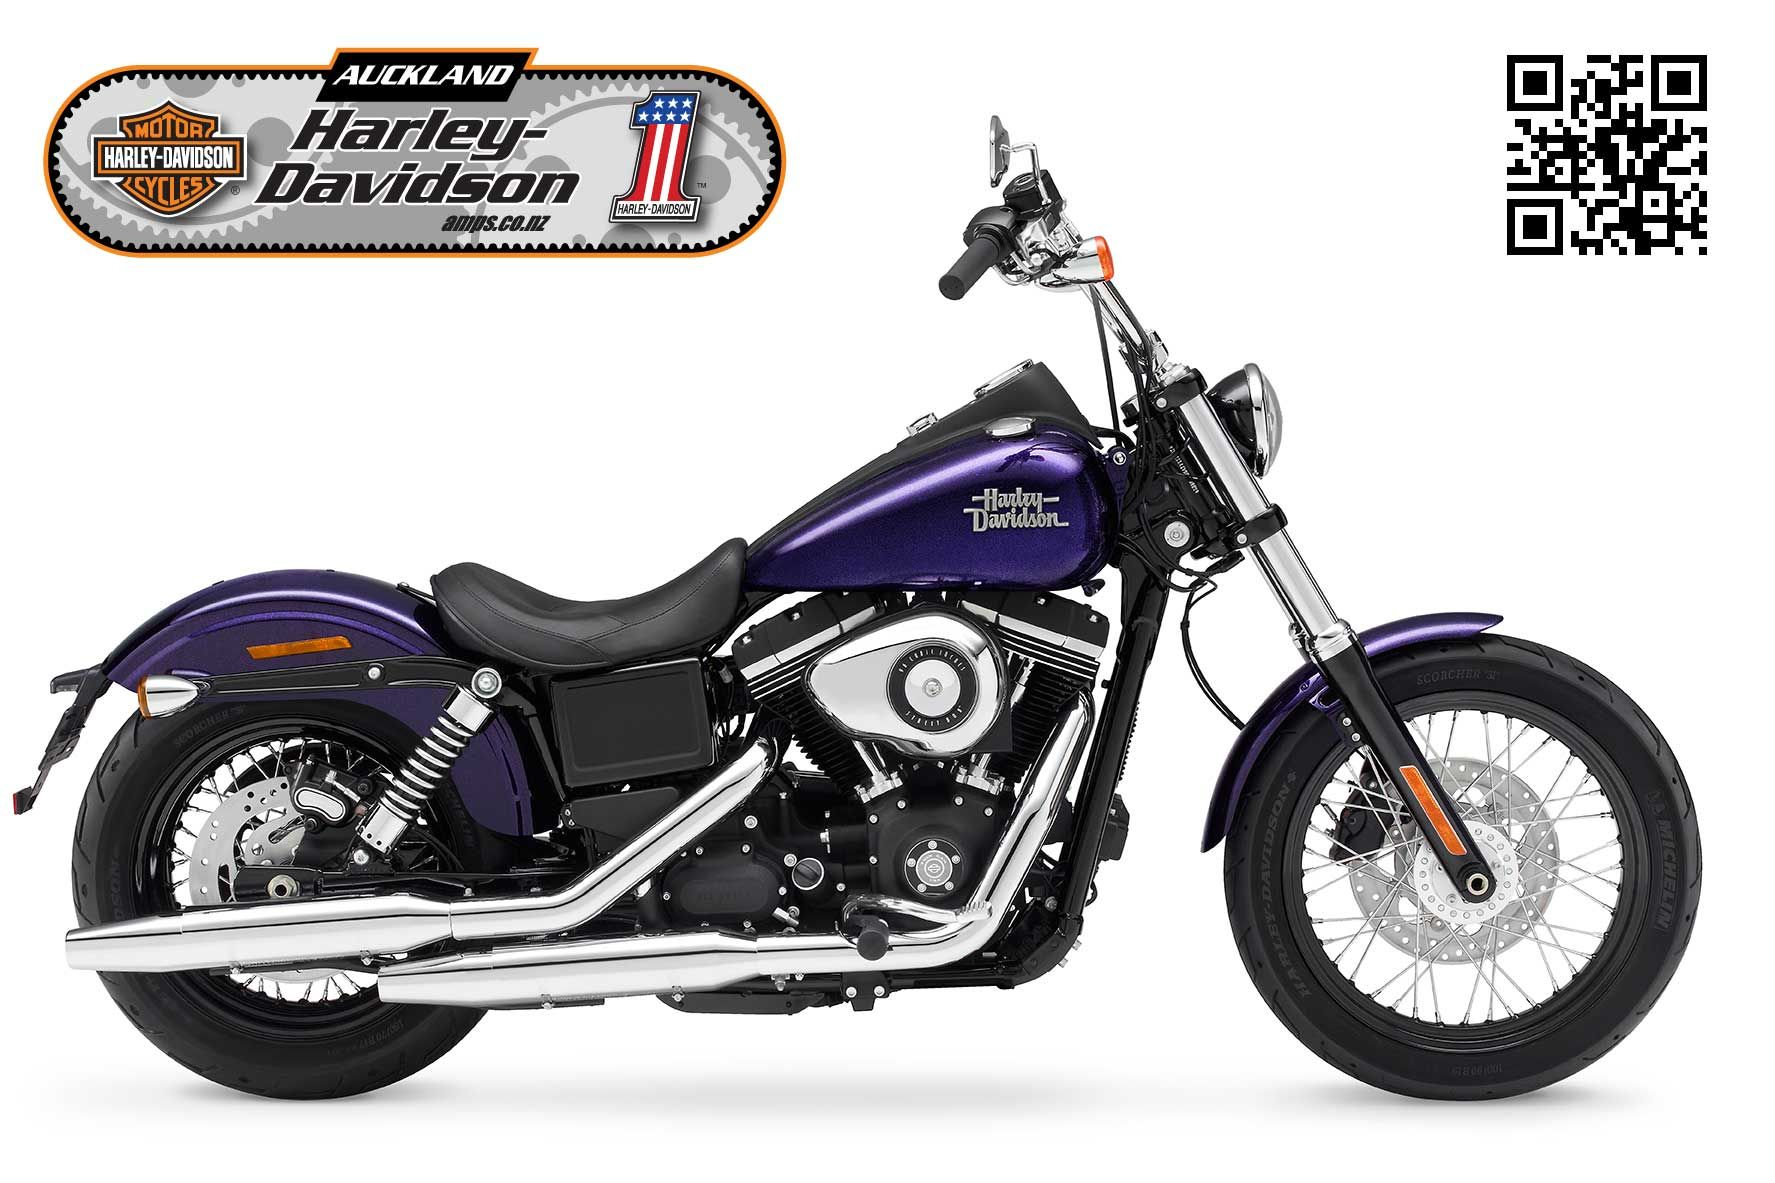 2014 Harley Davidson Fxdb Streetbob In Various Available At Auckland Motorcycles Power Sports New Zealand W Tipos De Motos Harley Dyna Harley Davidson Dyna